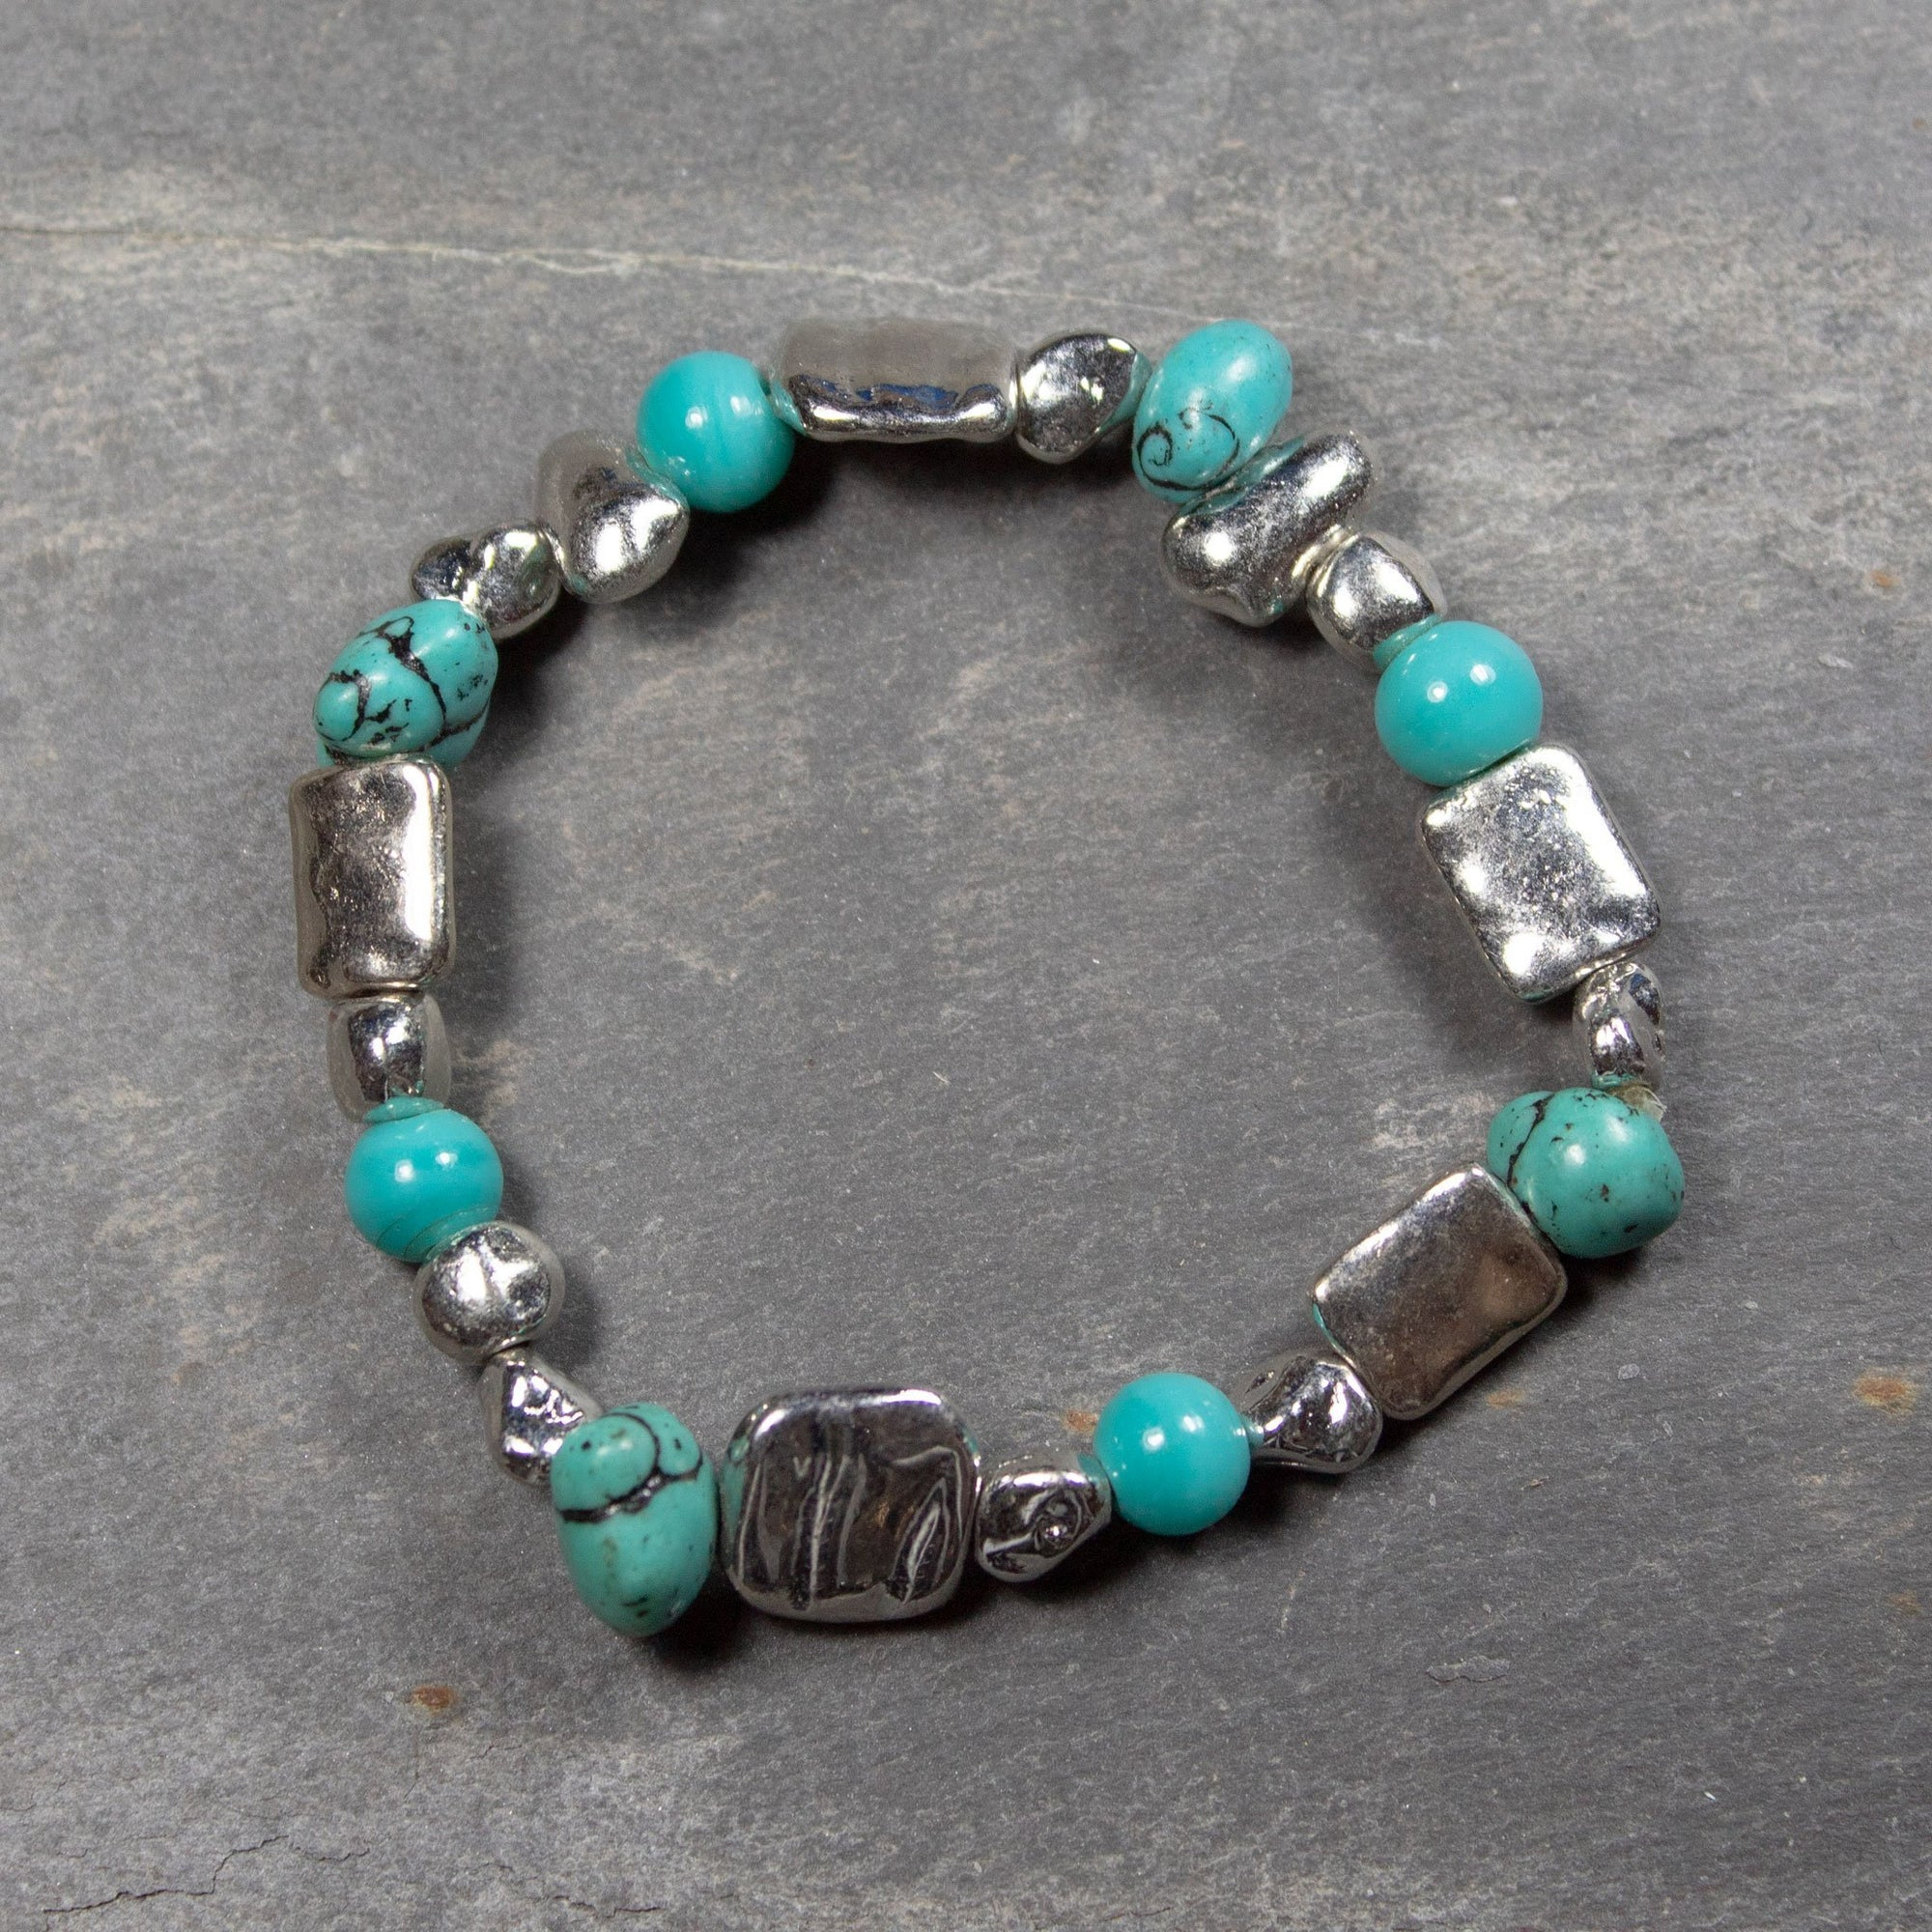 Turquoise Stone & Metal Bead Bracelet | Bracelet - The Naughty Shrew